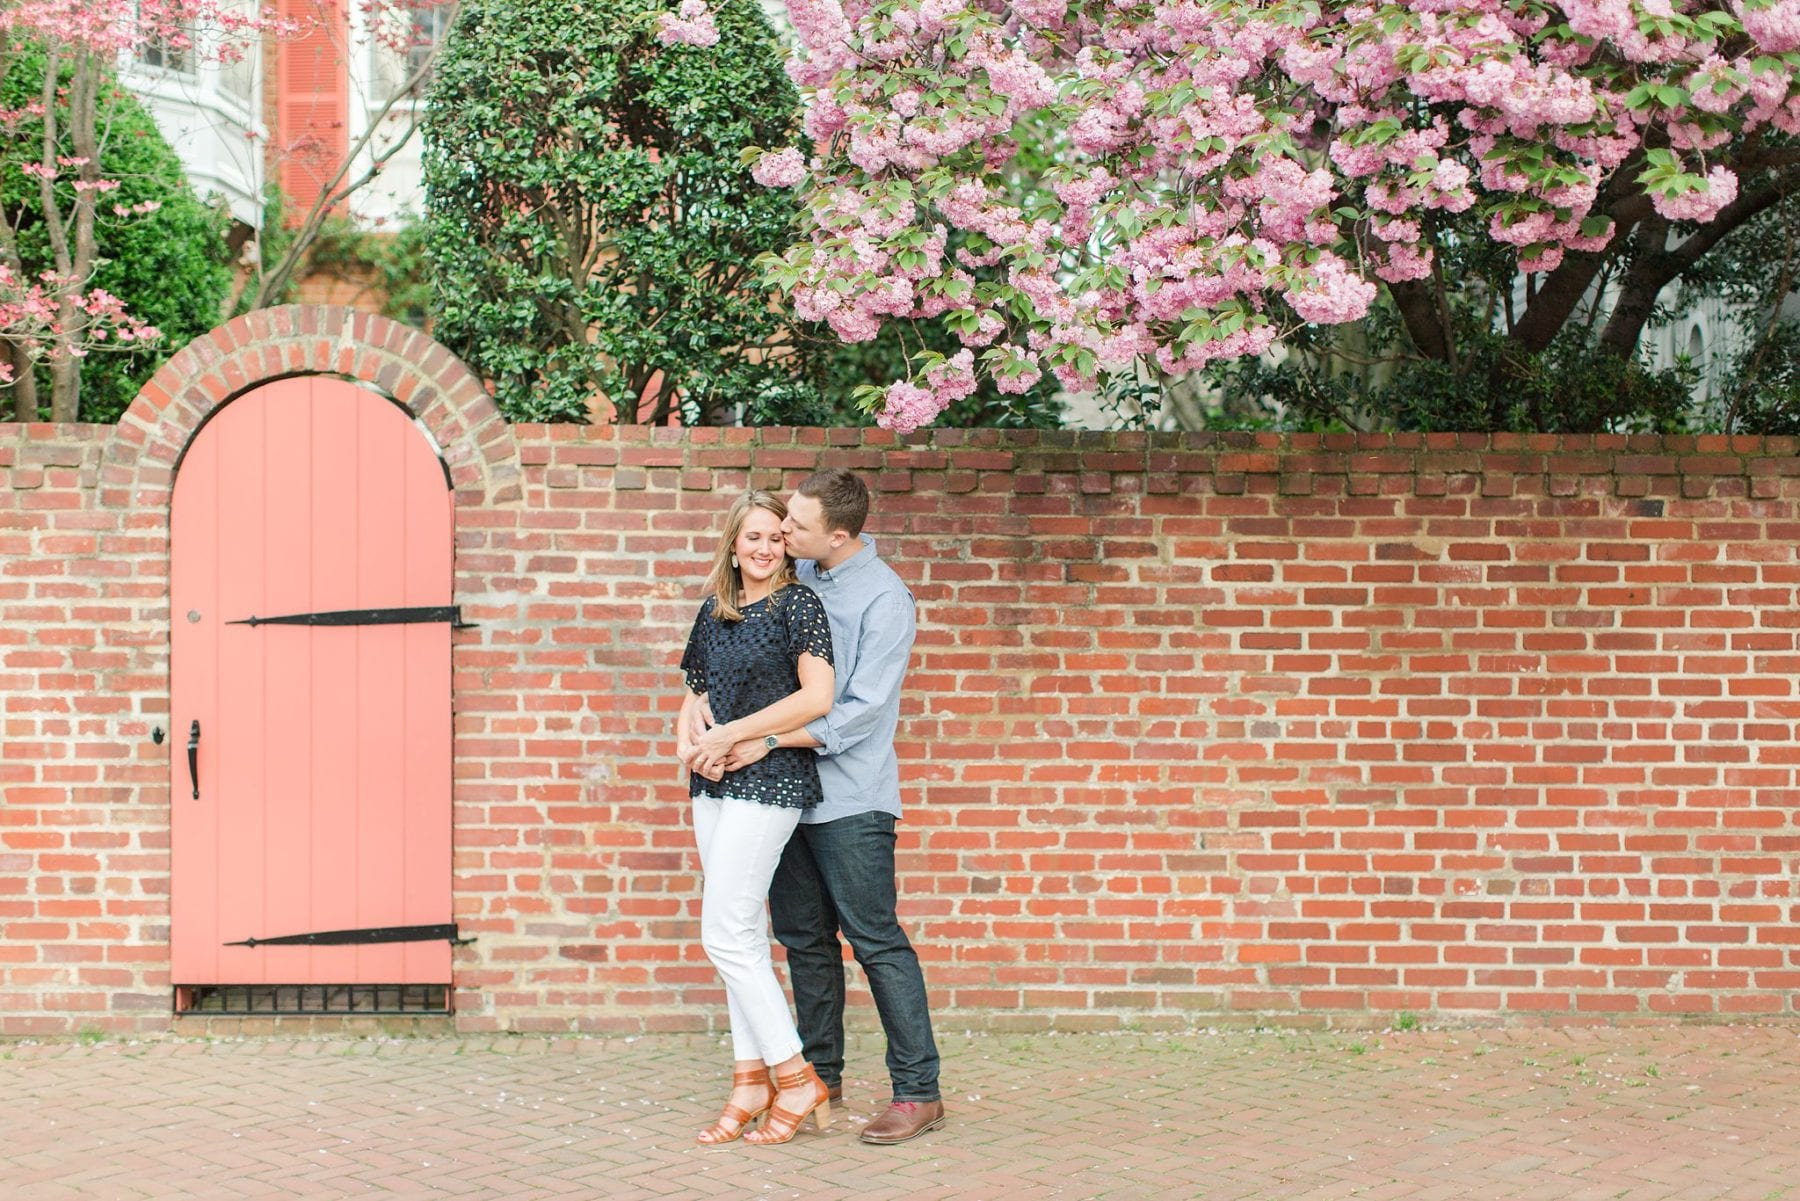 Springtime Old Town Alexandria Engagement Session Matt & Maxie Megan Kelsey Photography-178.jpg